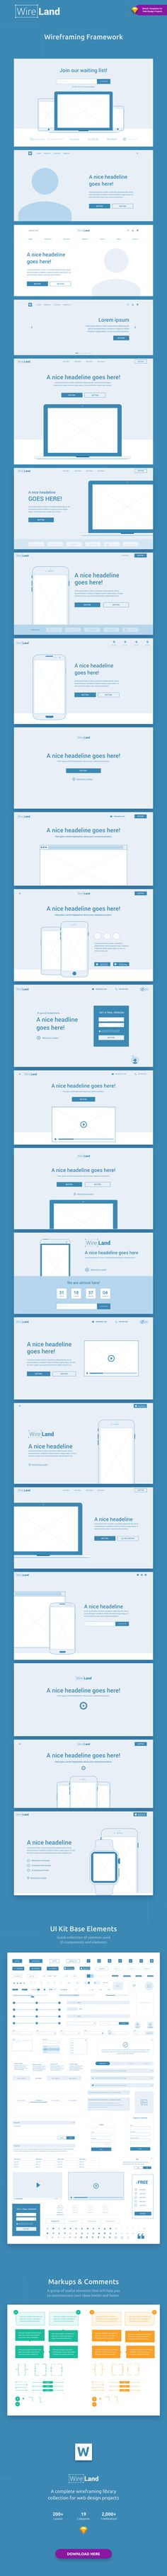 Wireland – is a Complete Wireframing Library Collection optimized to structure web design projects really fast and easy while getting great results. This library consist on 200+ ready-to-use layout sections divided into 19 popular content categories.  Excellent for Landing Pages, and any kind of Web design Projects.   Include layouts on: Testimonials, Ecommerce, Blog, Slider, Portfolio, Header, Price Table, Features, Benefits, How it works, Footer, Value proposition, hero section, etc.